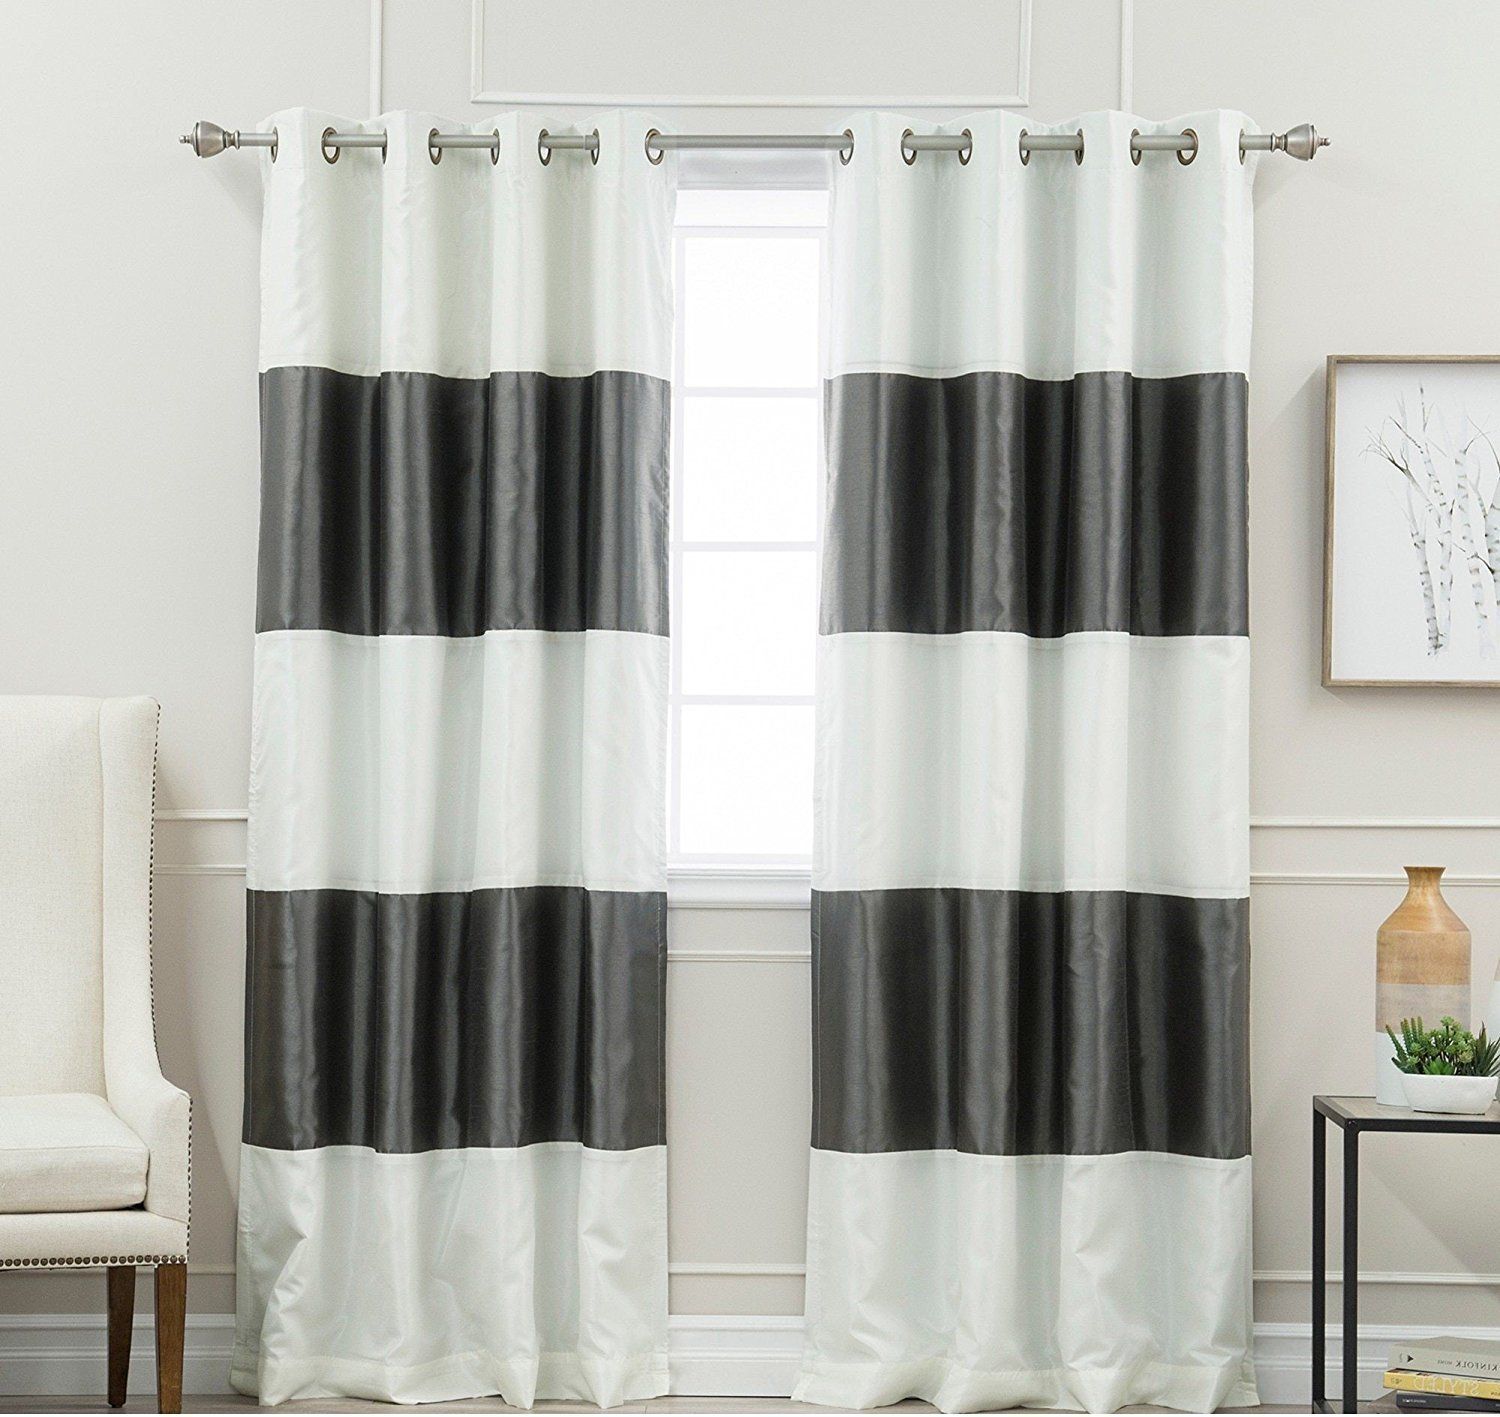 chenille p curtains striped green merge sale blackout hot